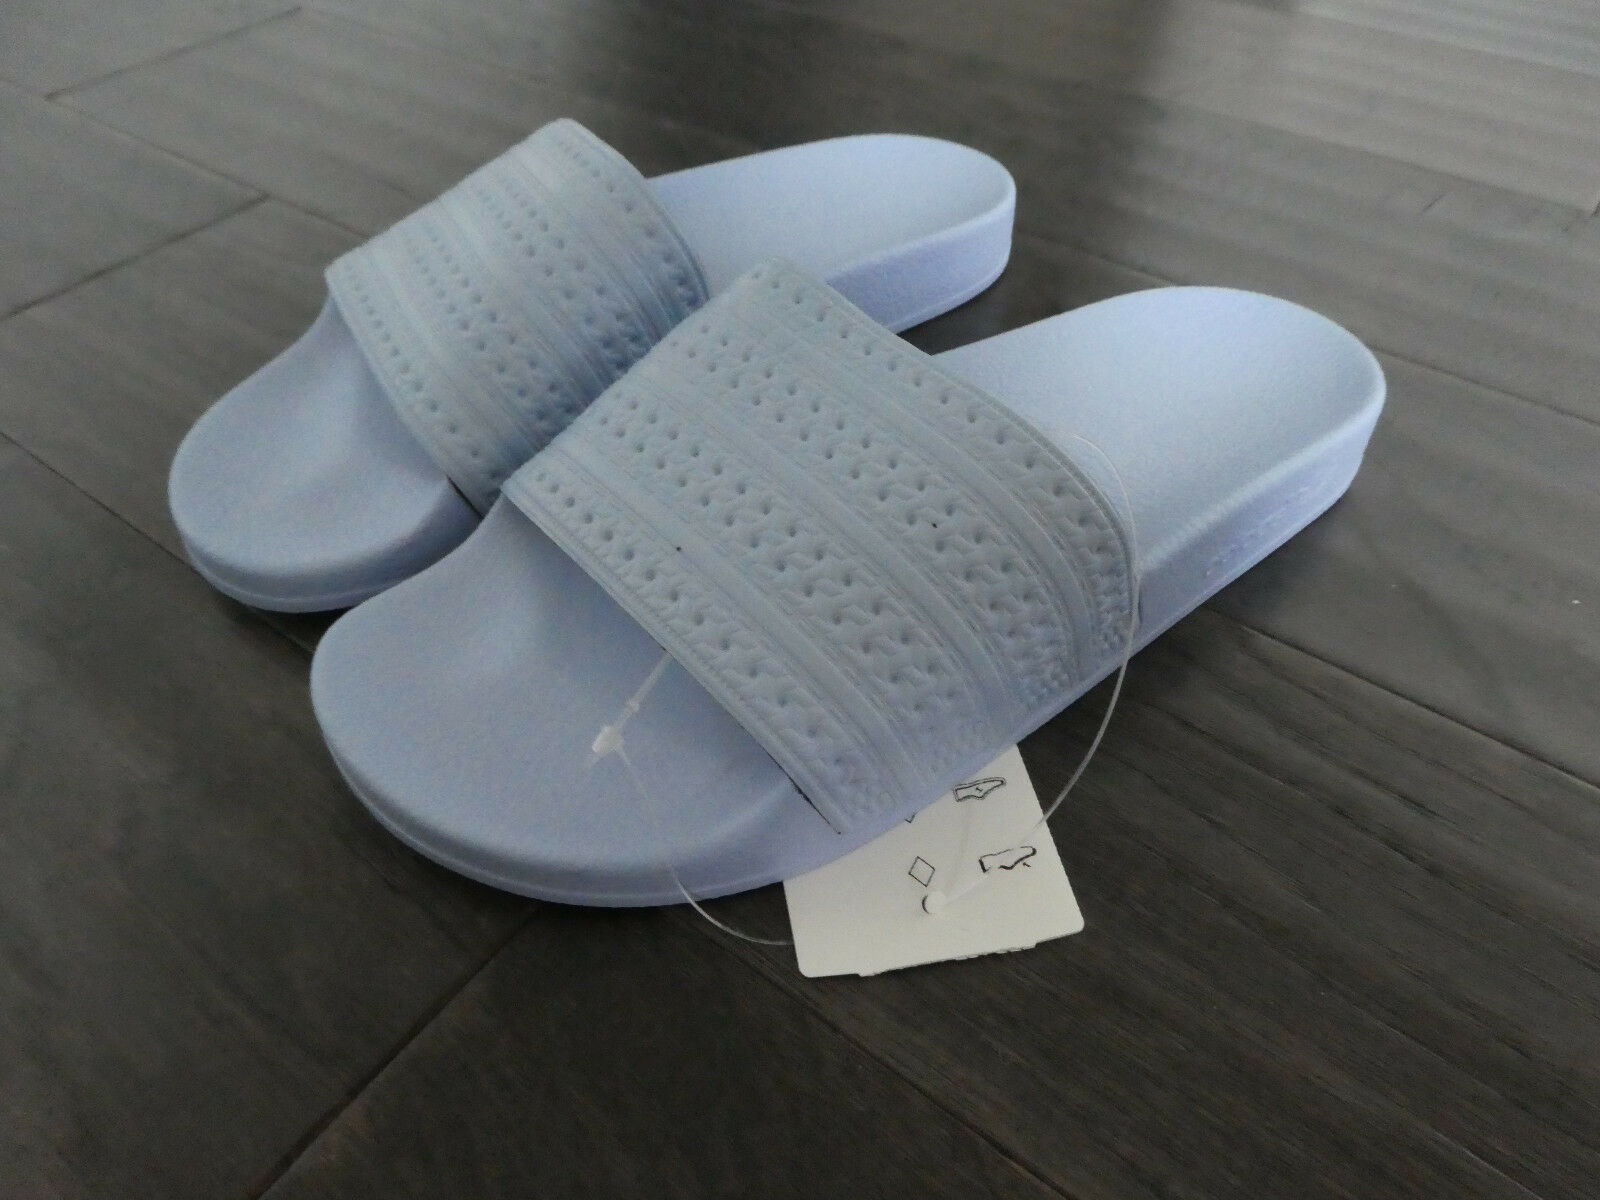 Adidas Adilette διαφάνΡιΡς ανδρικά παπούτσια Ξ½ΞΞ± Made in Italy Easy Blue BA7539